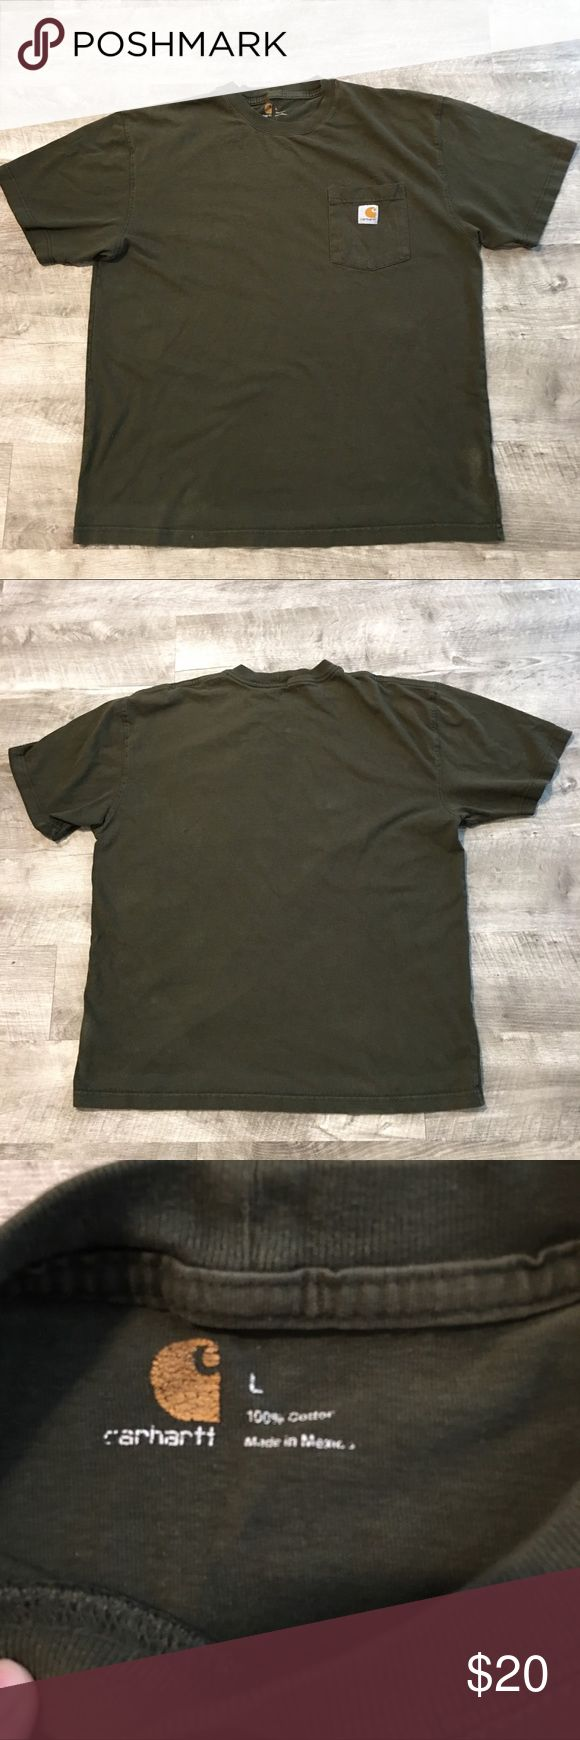 Carhartt men's tee size large w/flaws This has wear, fading and discoloration and two small holes on front as shown. Size large men's tee Carhartt Shirts Tees - Short Sleeve